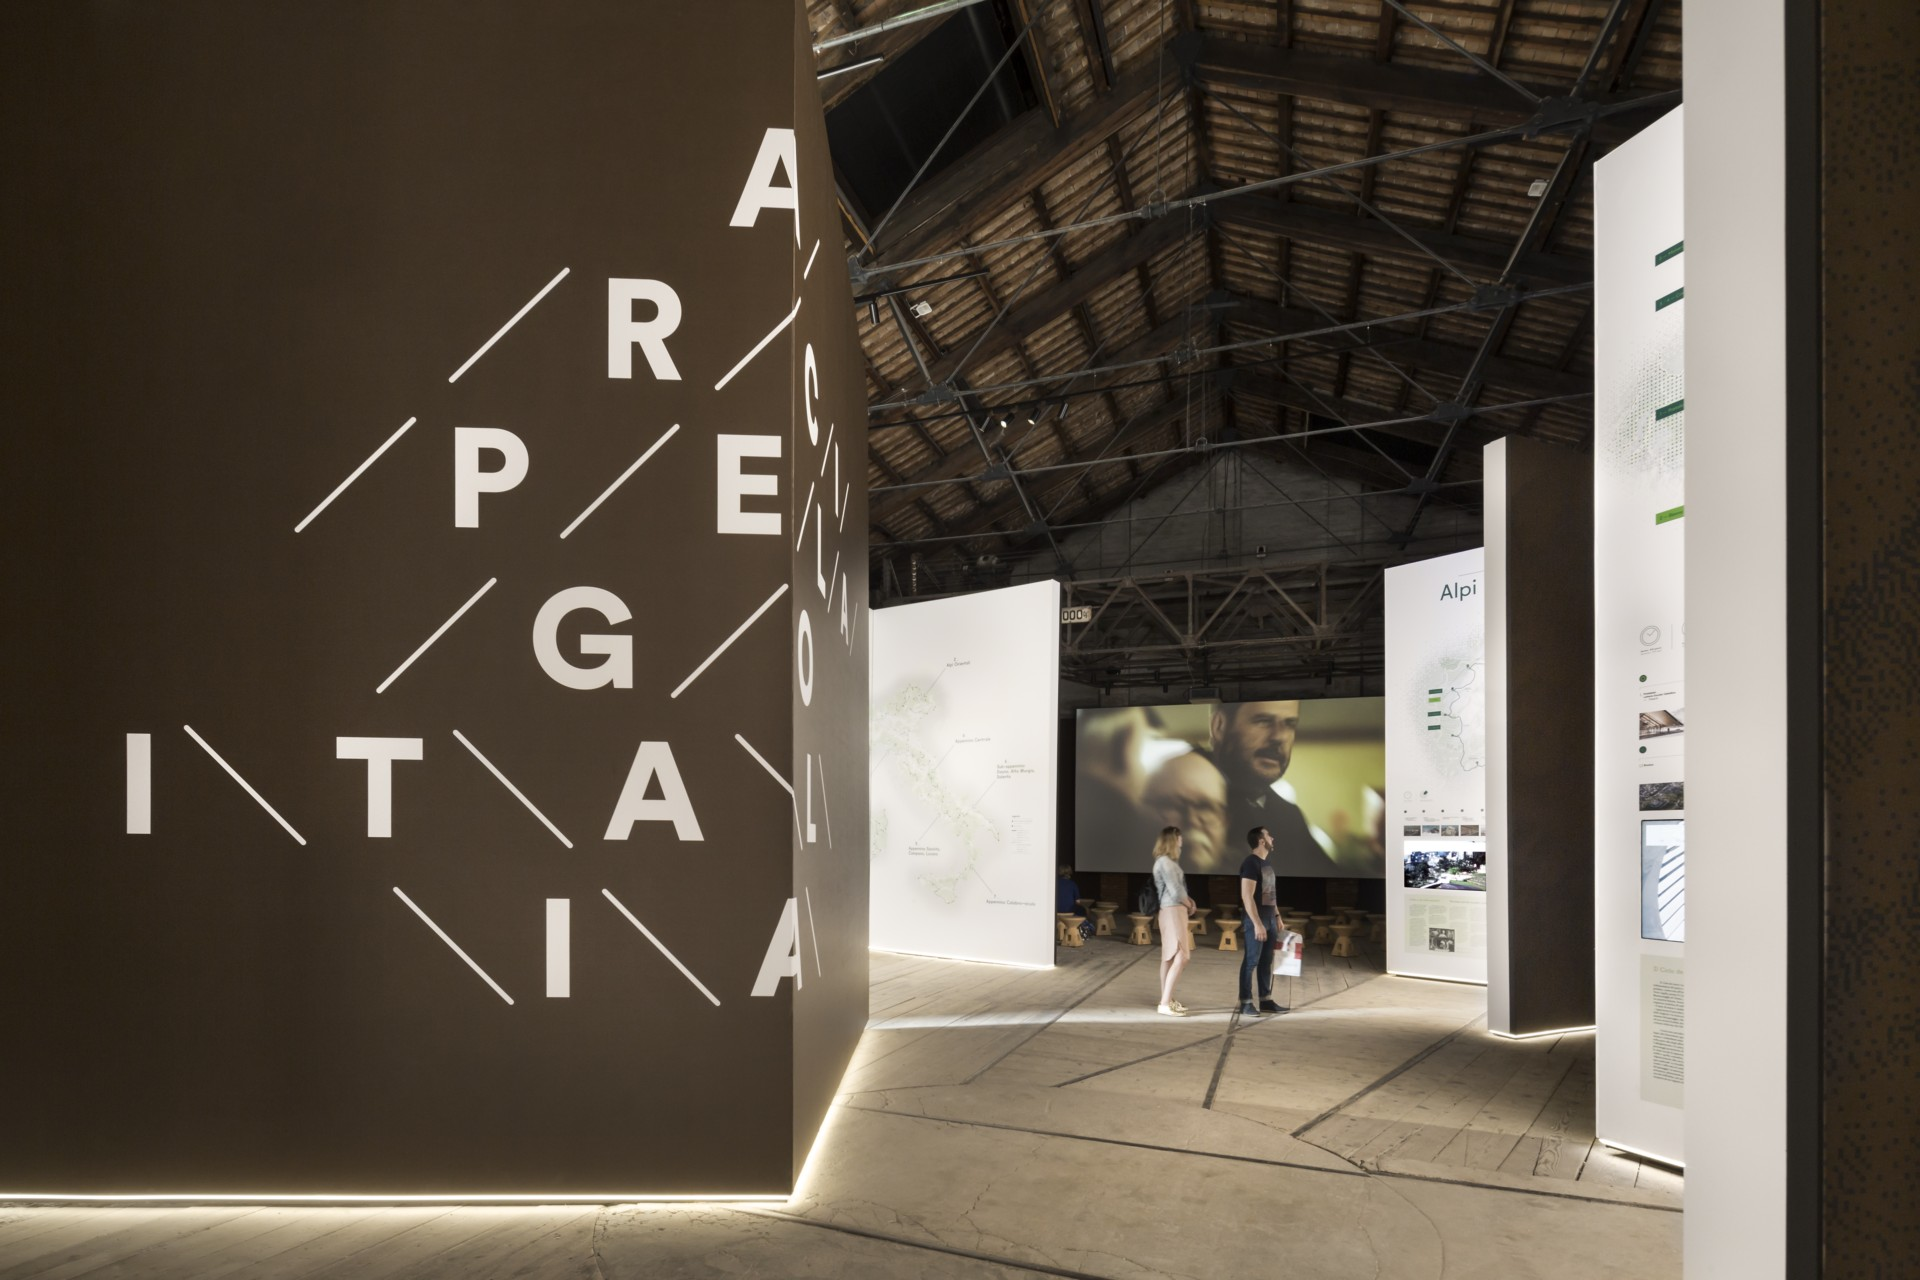 Architecture biennale from venice to berlin with fab